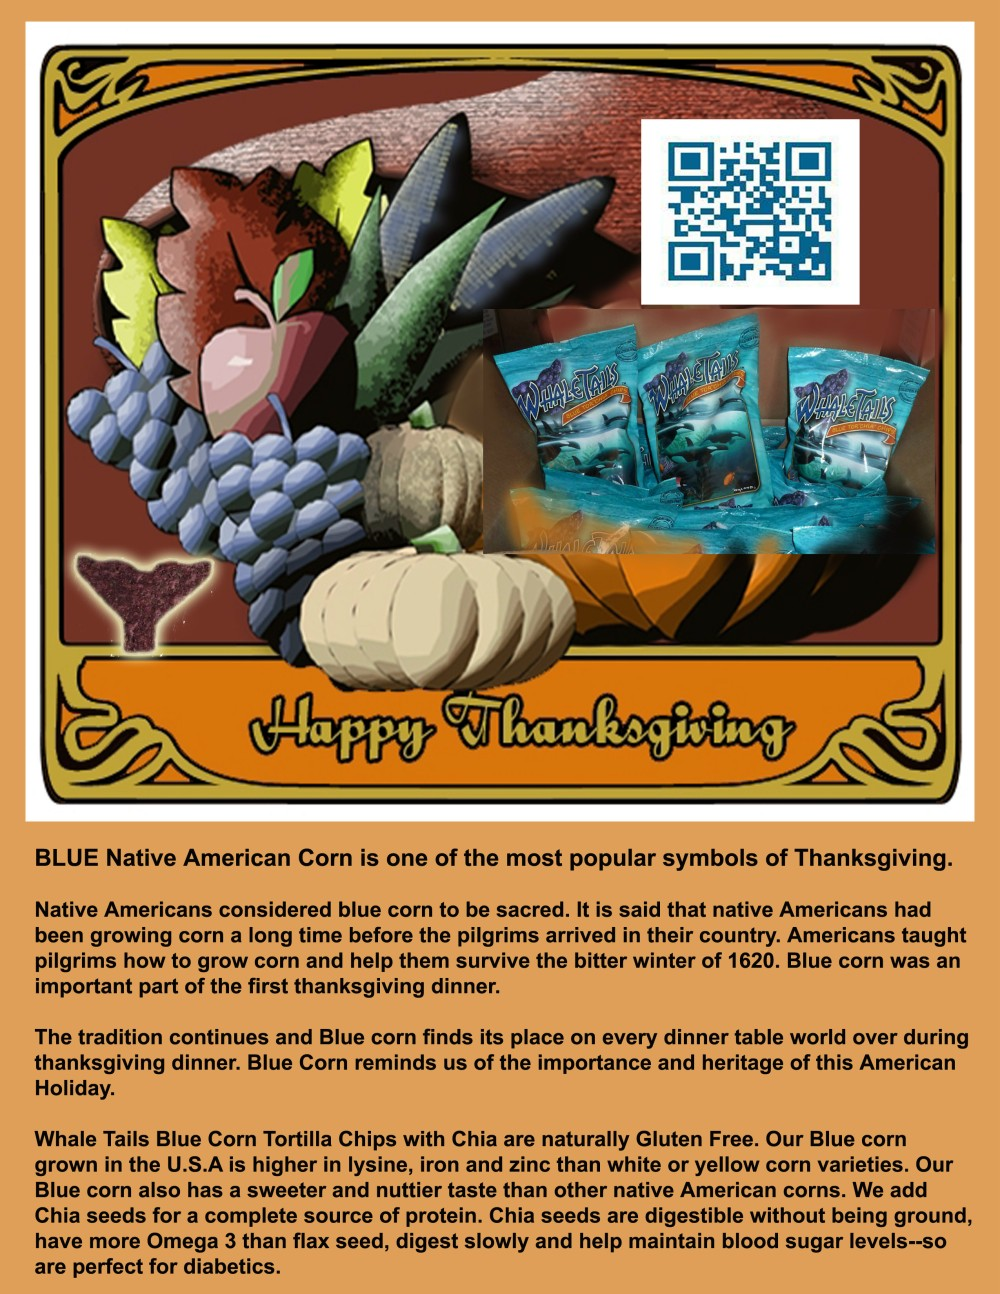 Thanksgiving facts about blue corn